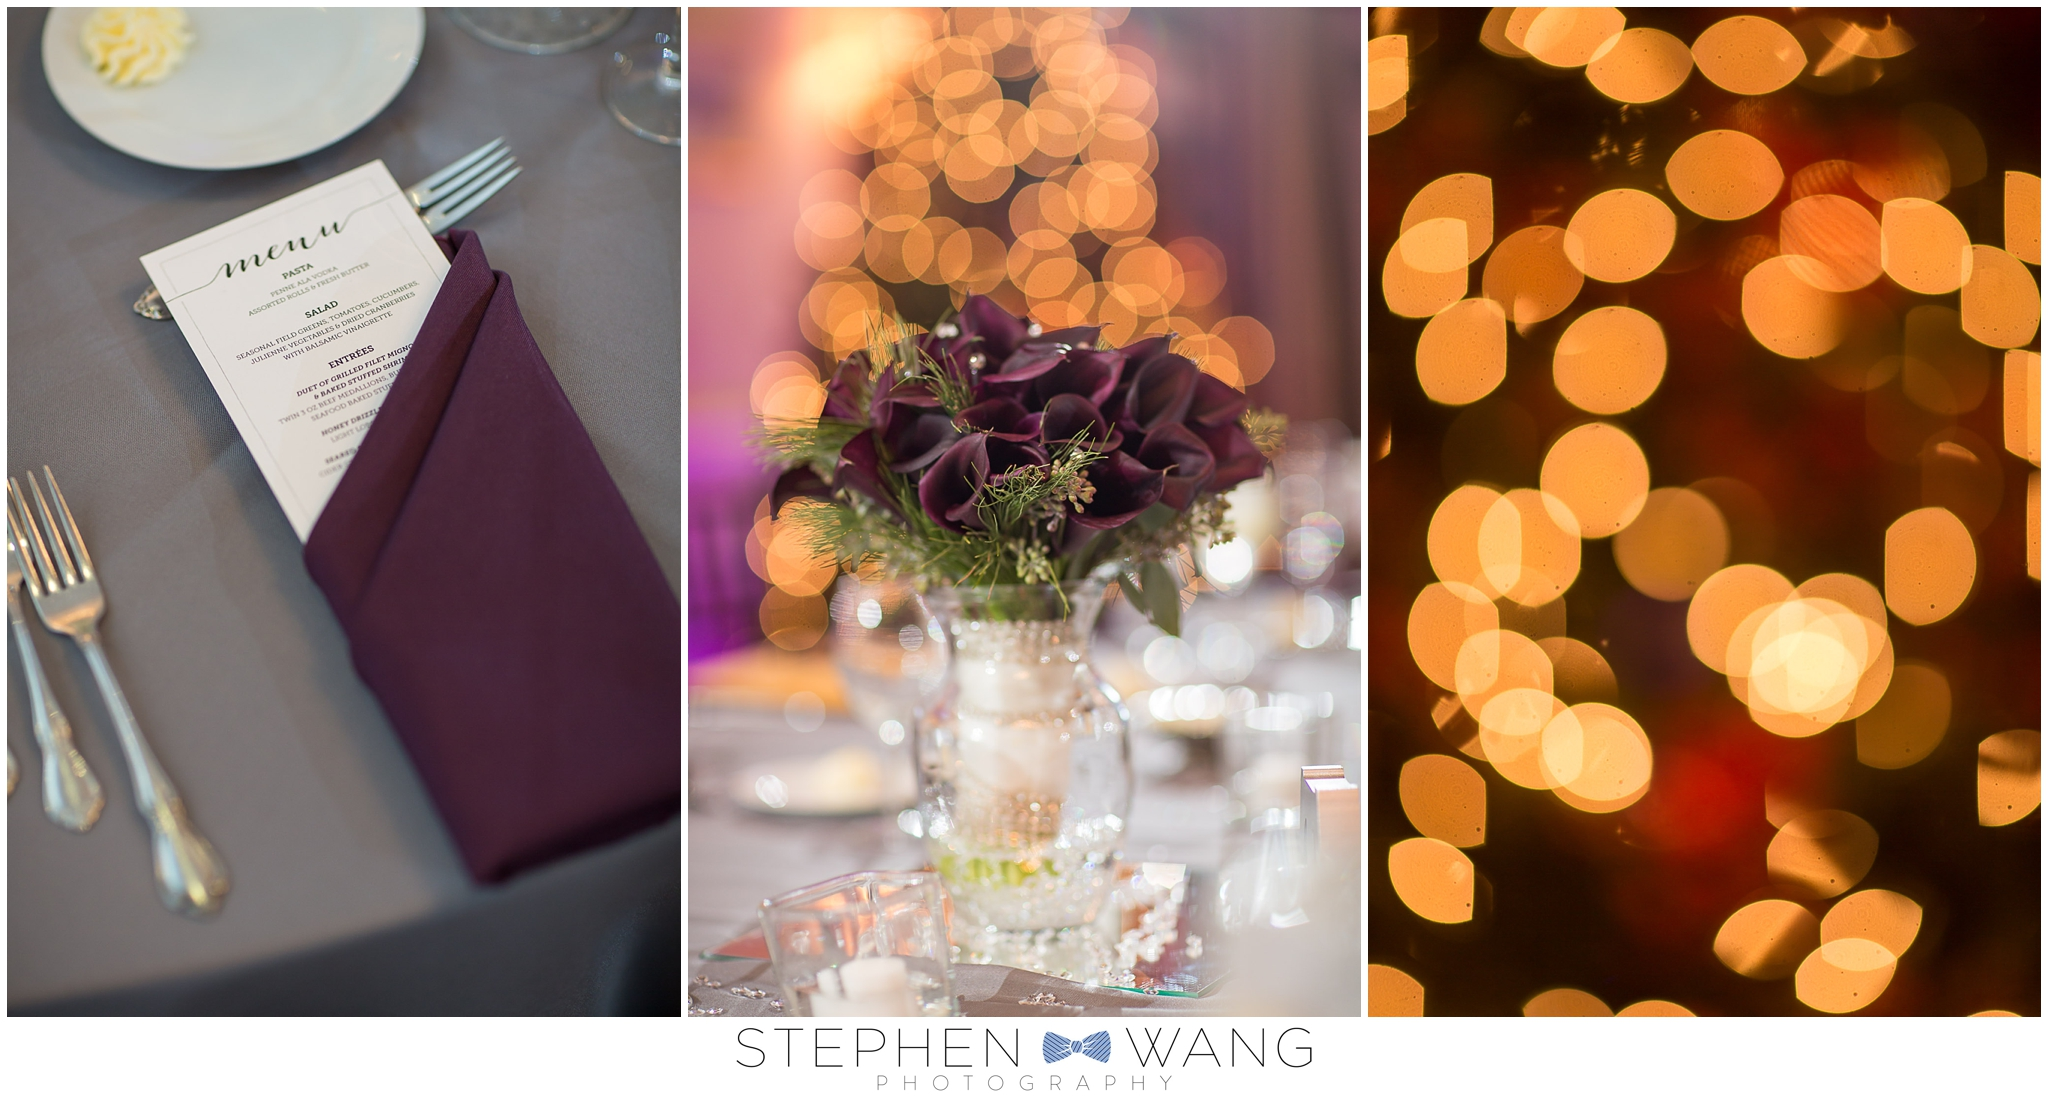 Stephen Wang Photography winter wedding connecticut east haddam riverhouse haddam ct middletown inn christmas wedding photography connecticut photographer-01-15_0030.jpg